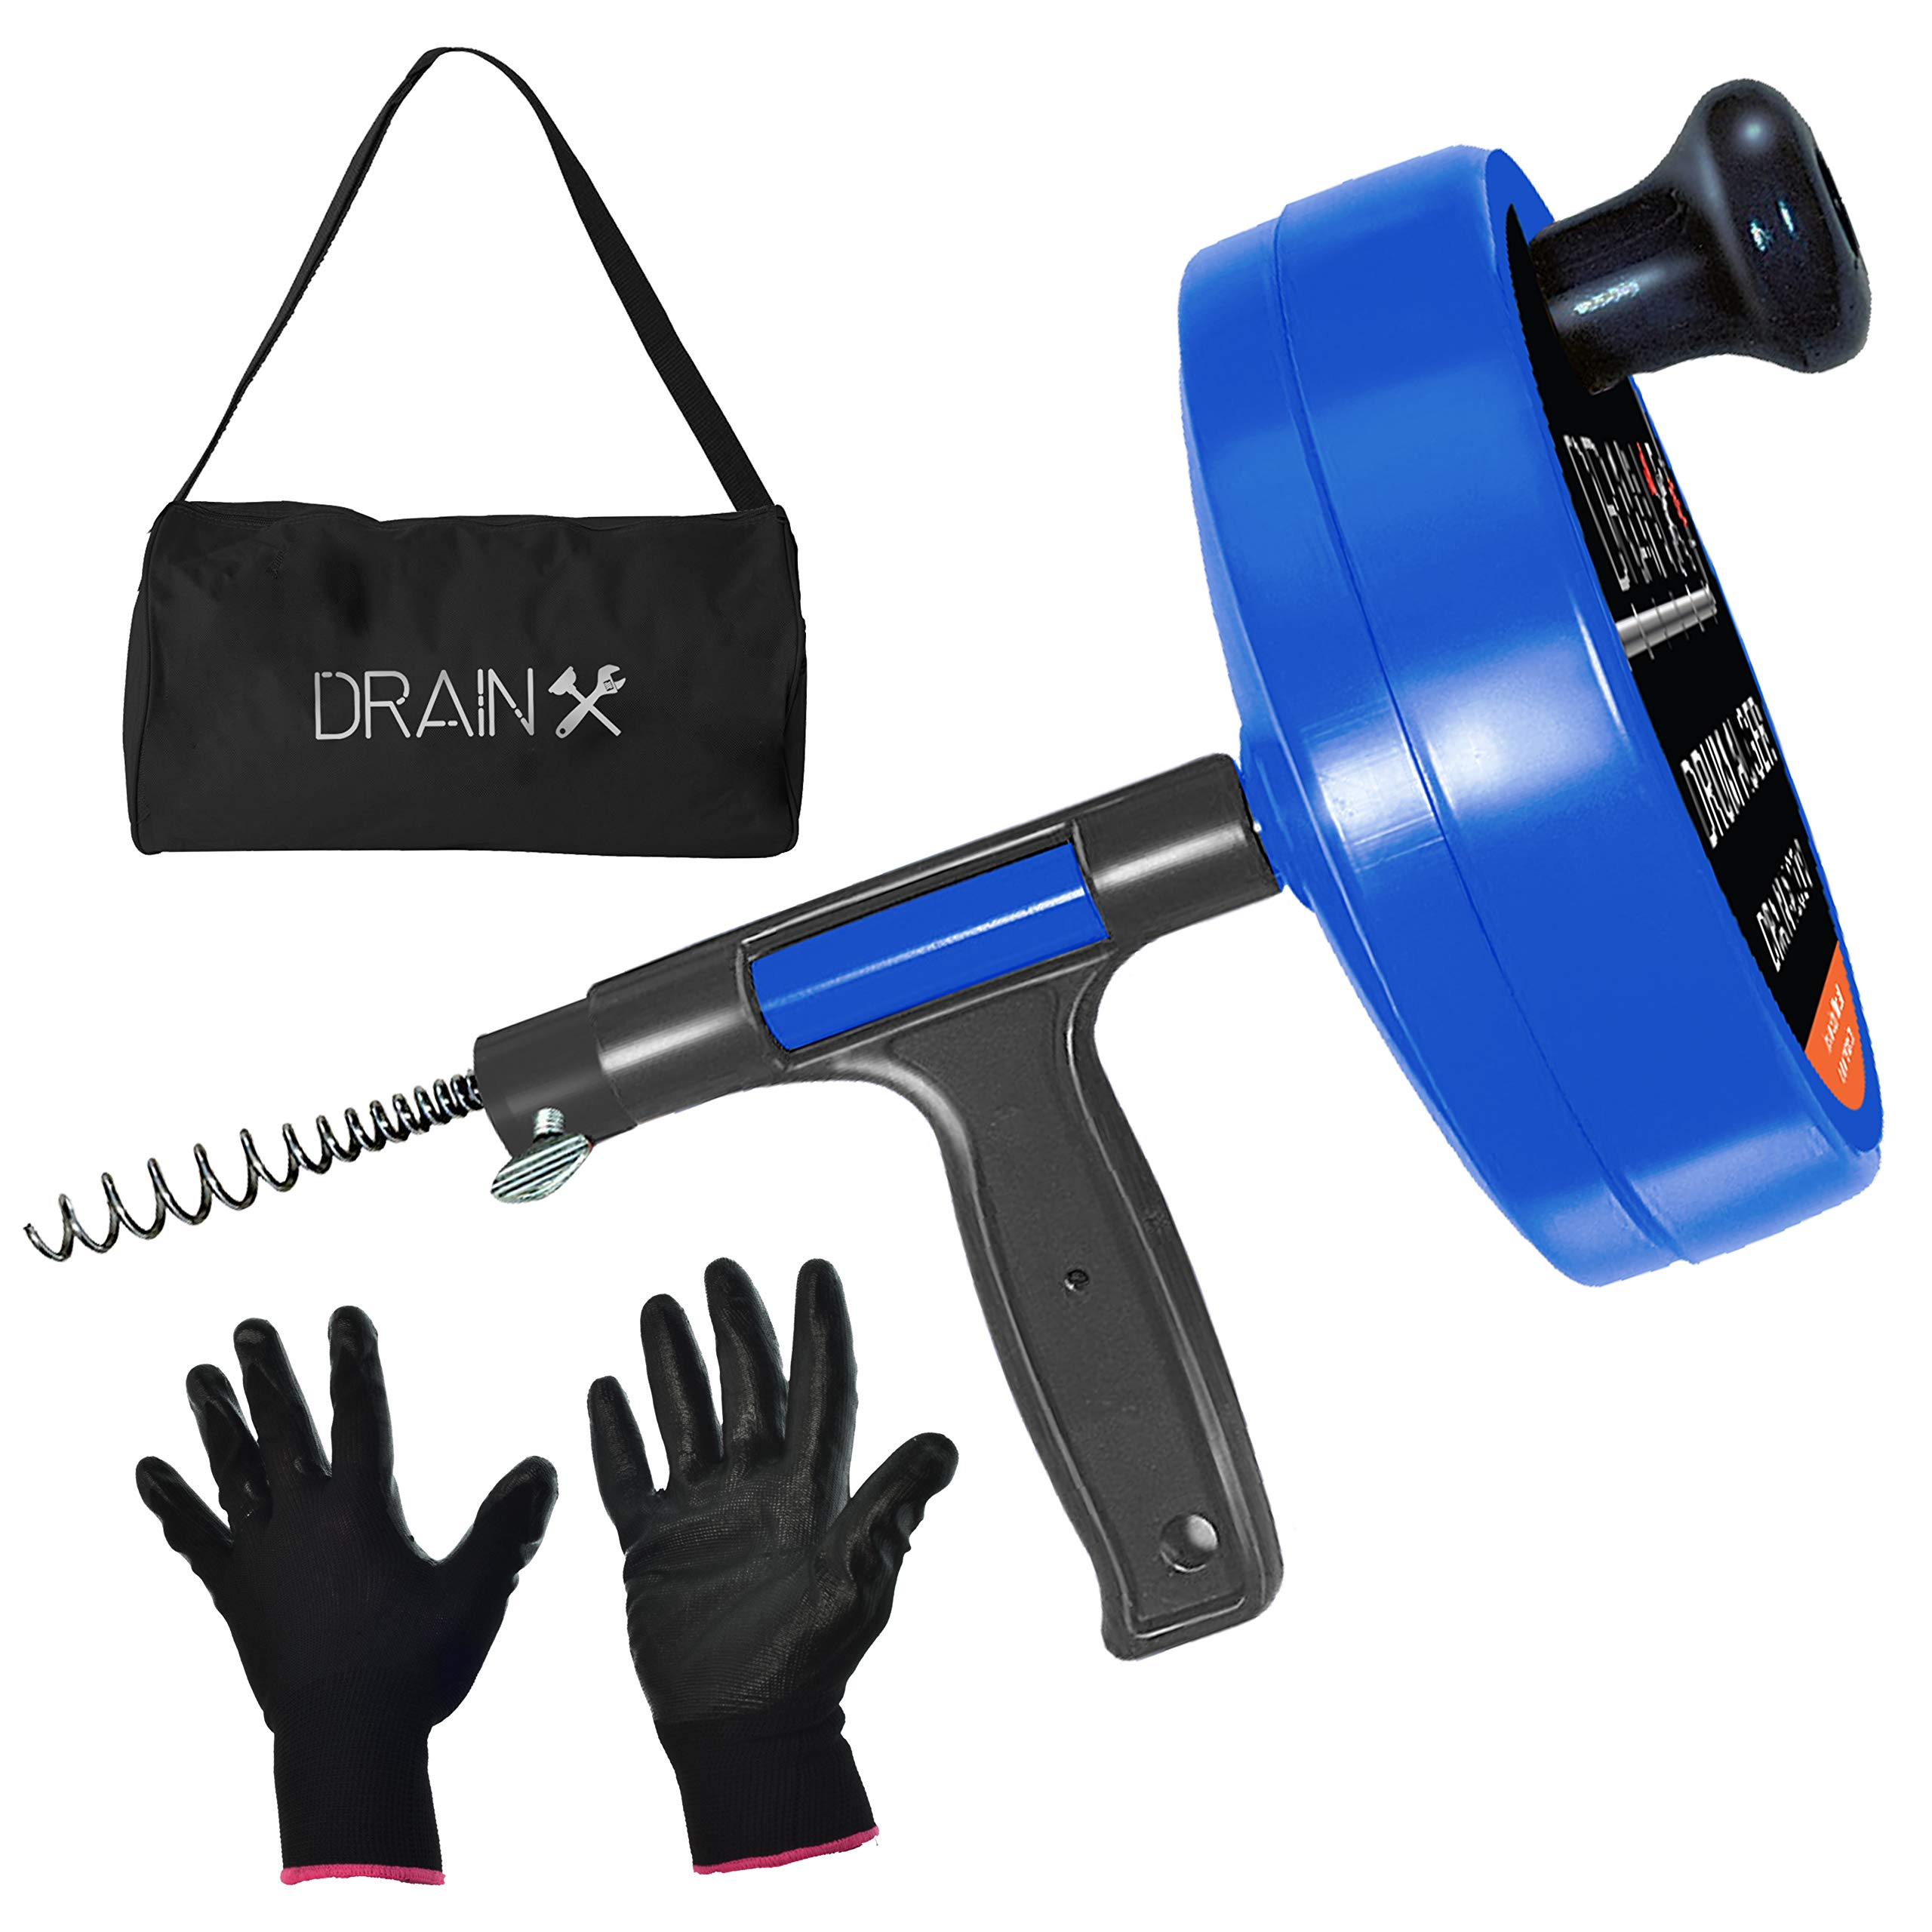 Drainx Pro 35-FT Steel Drum Auger Plumbing Snake | Drain Snake Cable with Work Gloves and Storage Bag by DrainX